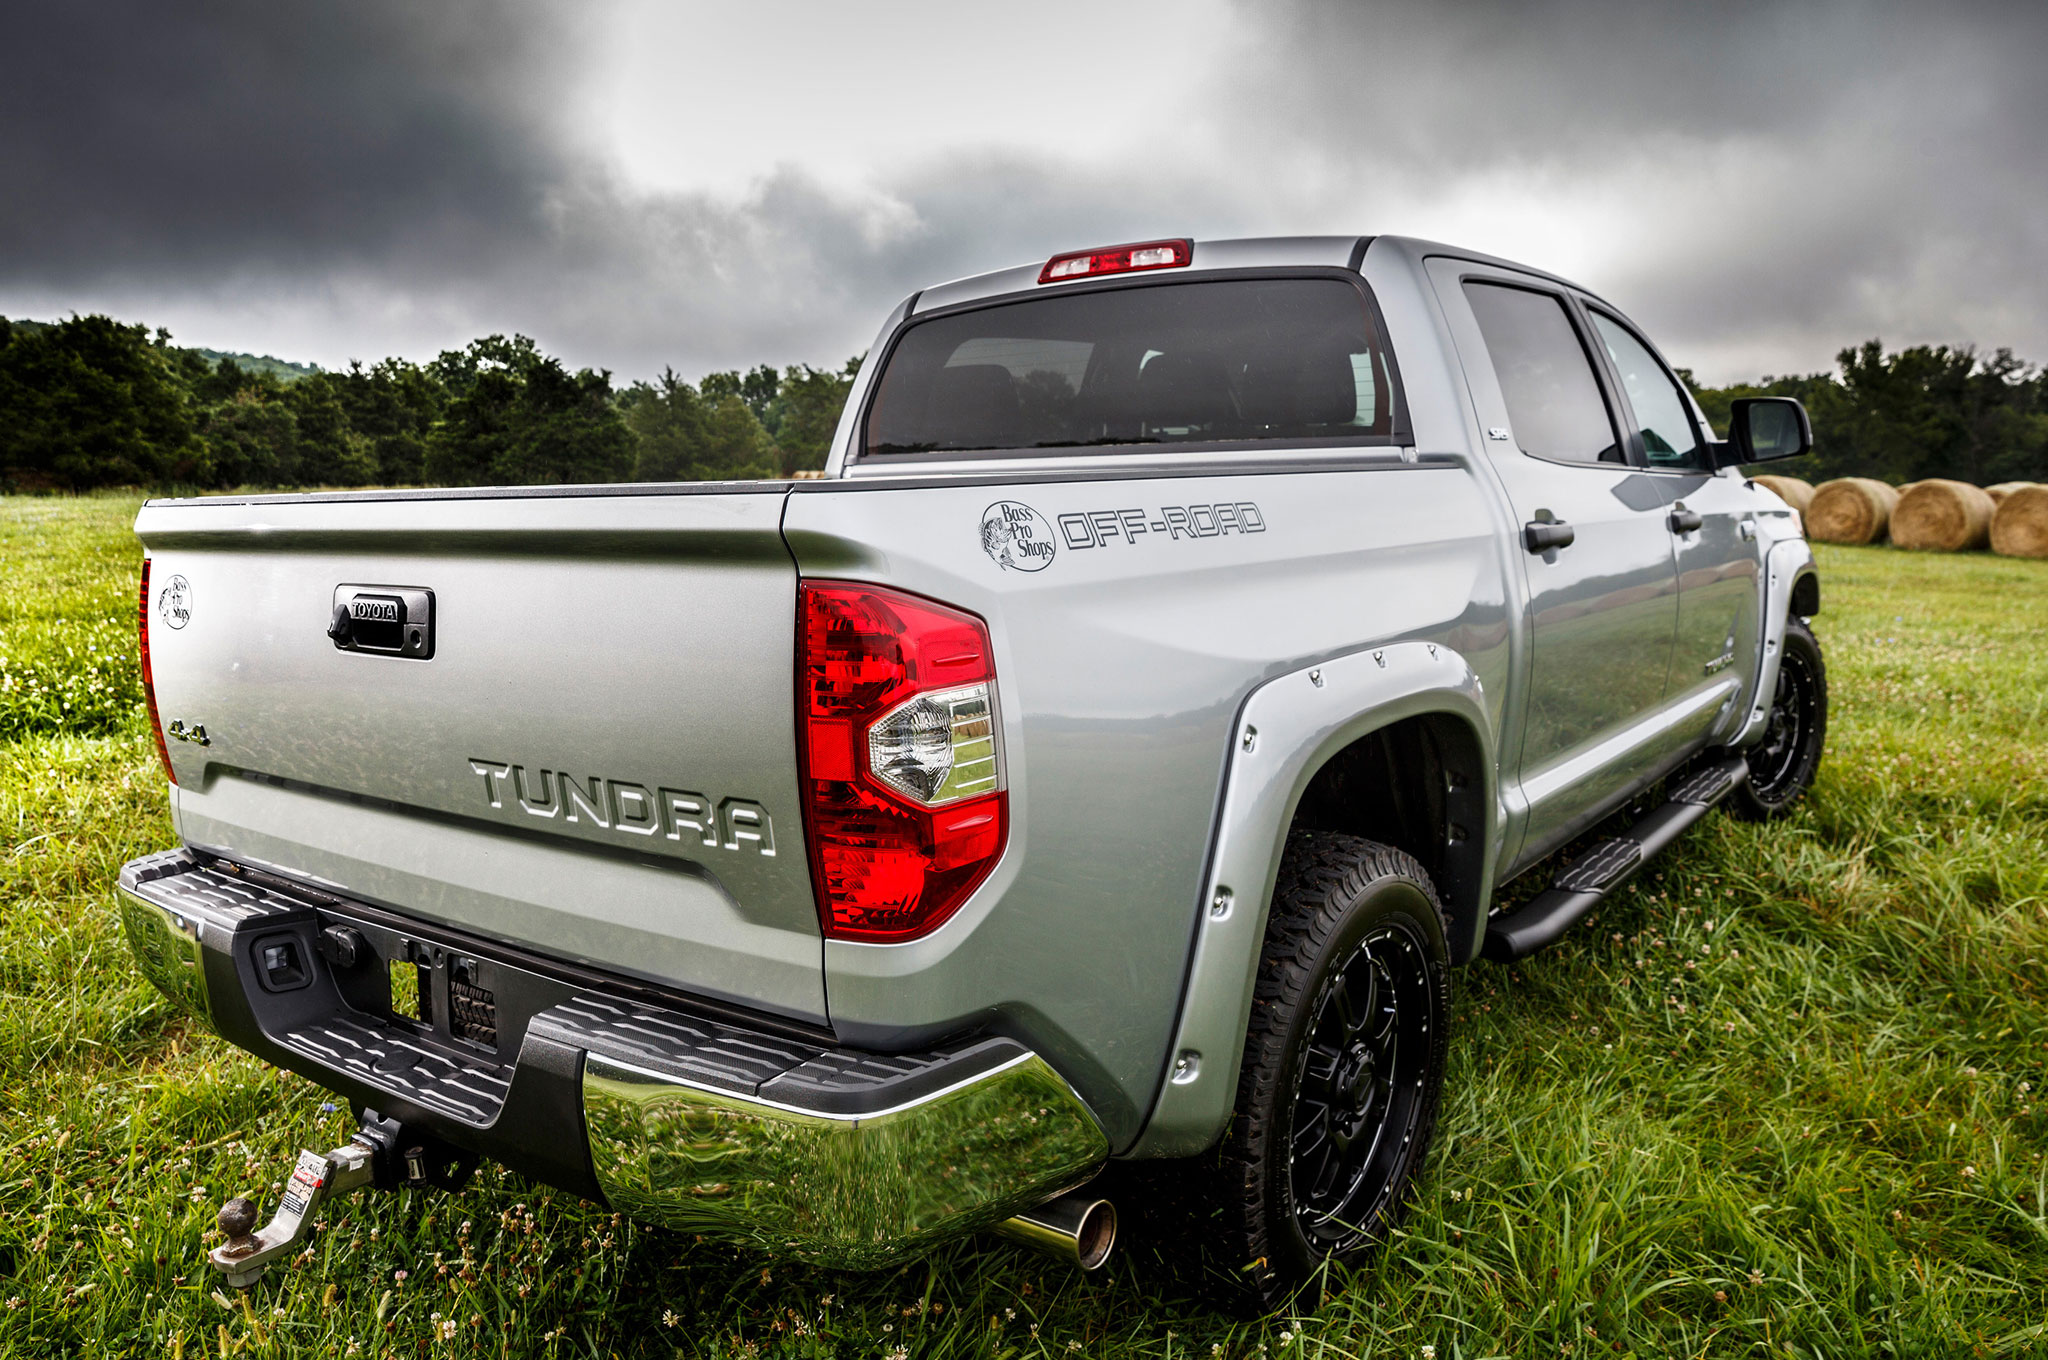 4runner Trd Pro Review >> 2015 Toyota 4Runner, Tacoma, Tundra TRD Pro Review - Automobile